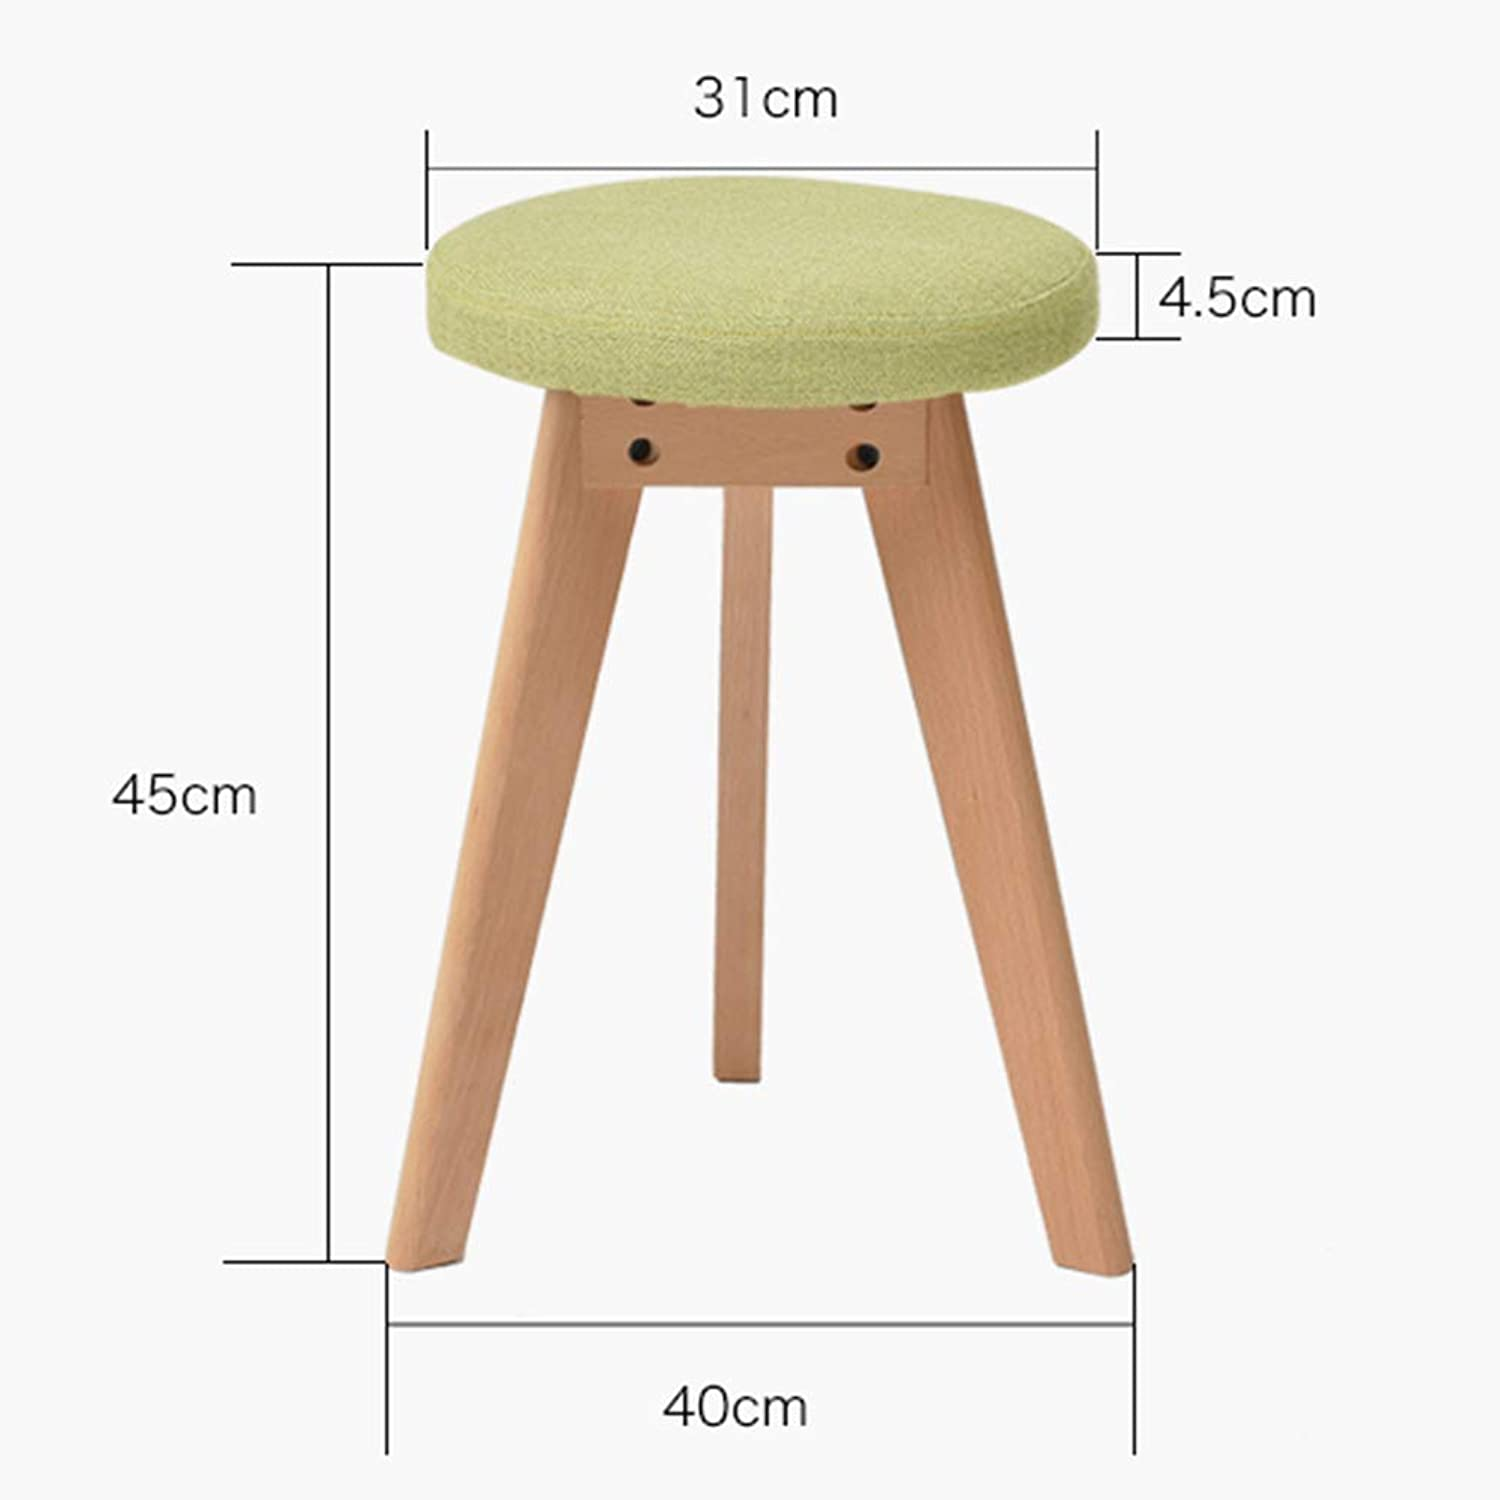 JZX Modern Minimalist Home Table and Stool, Stylish Nordic Bench, Solid Wood Footstool, Stool